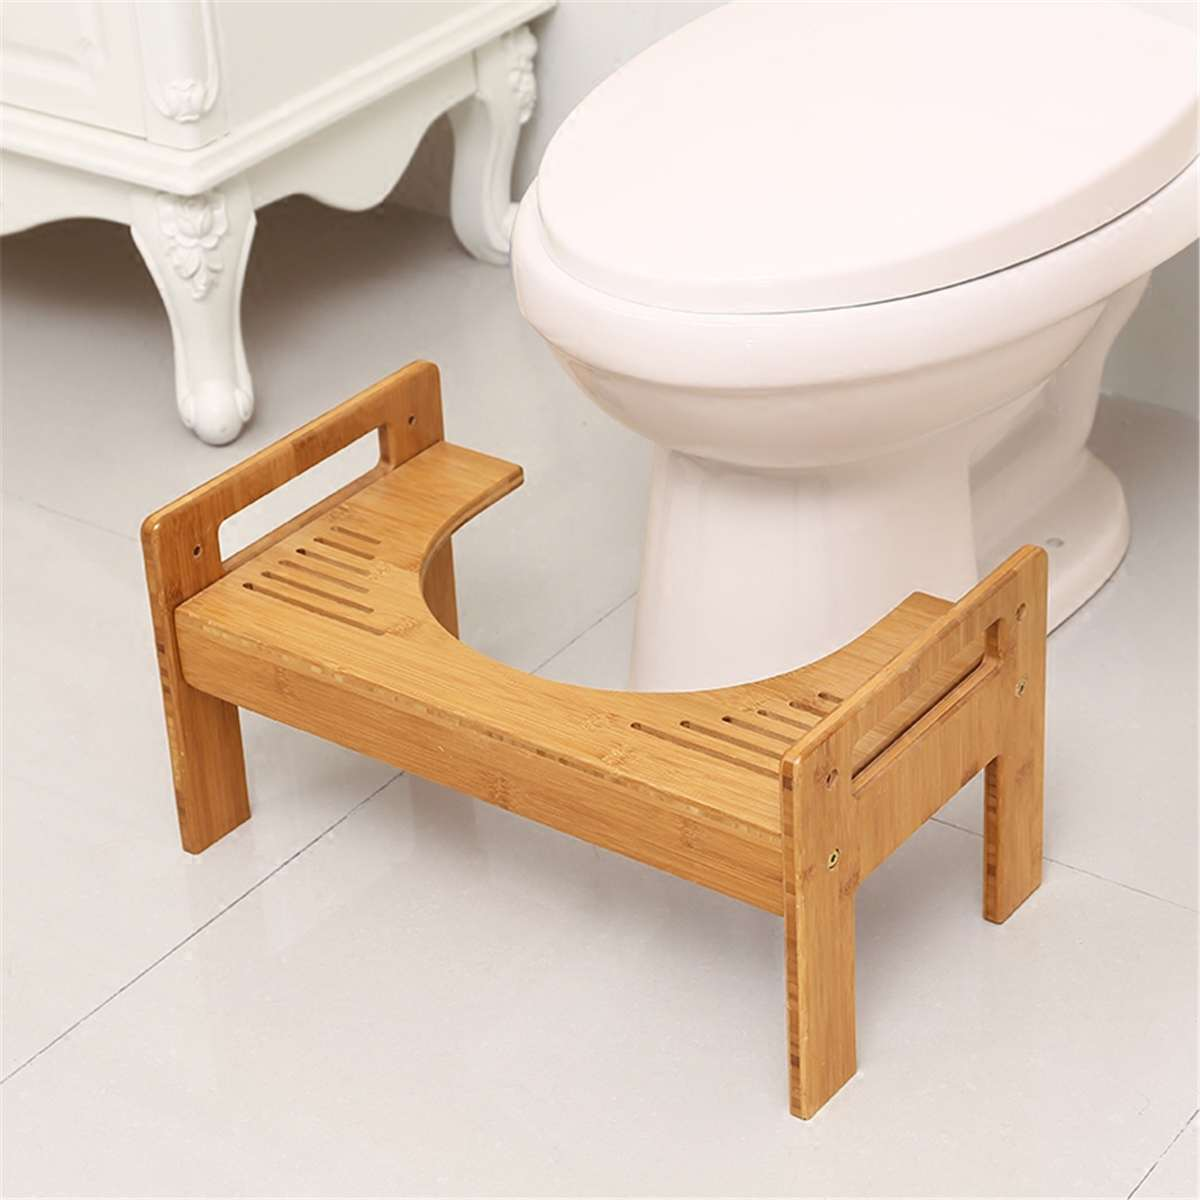 Wooden Thicken Round Toilet Foot Stool Home Crouch Hole Bench Tool Elderly Constipation Assistant Bathroom Potty Step Foot StoolWooden Thicken Round Toilet Foot Stool Home Crouch Hole Bench Tool Elderly Constipation Assistant Bathroom Potty Step Foot Stool